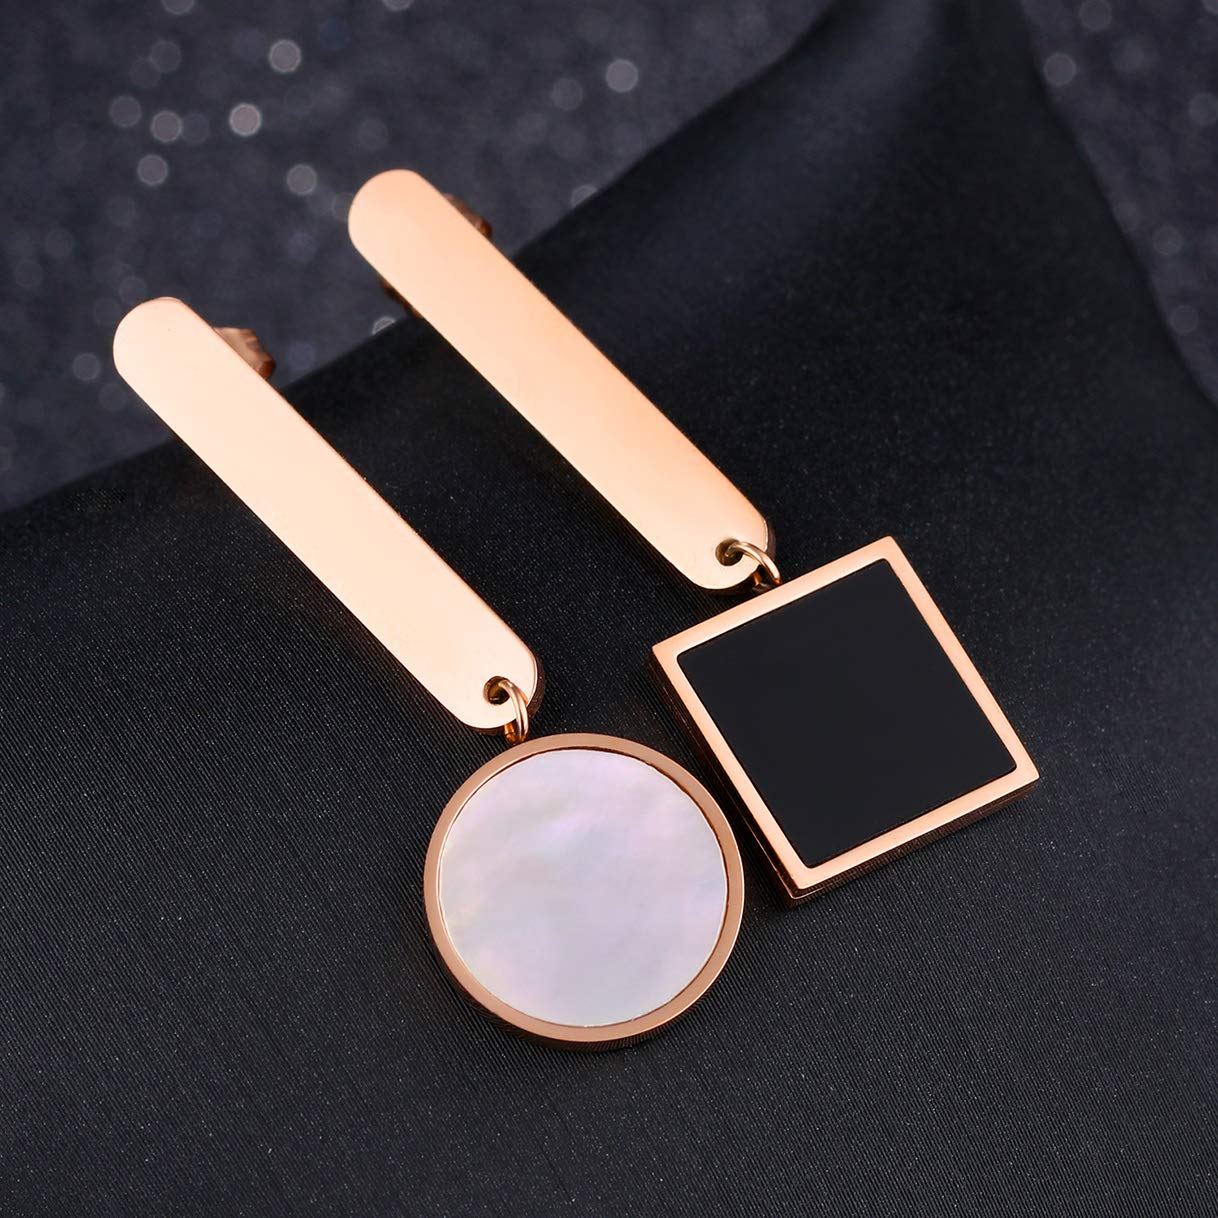 CHARMFAME Rose Gold Plated Stainless Steel Asymmetrical Drop Earrings Circle /& Square Geometric Dangle Earrings for Women /& Girls